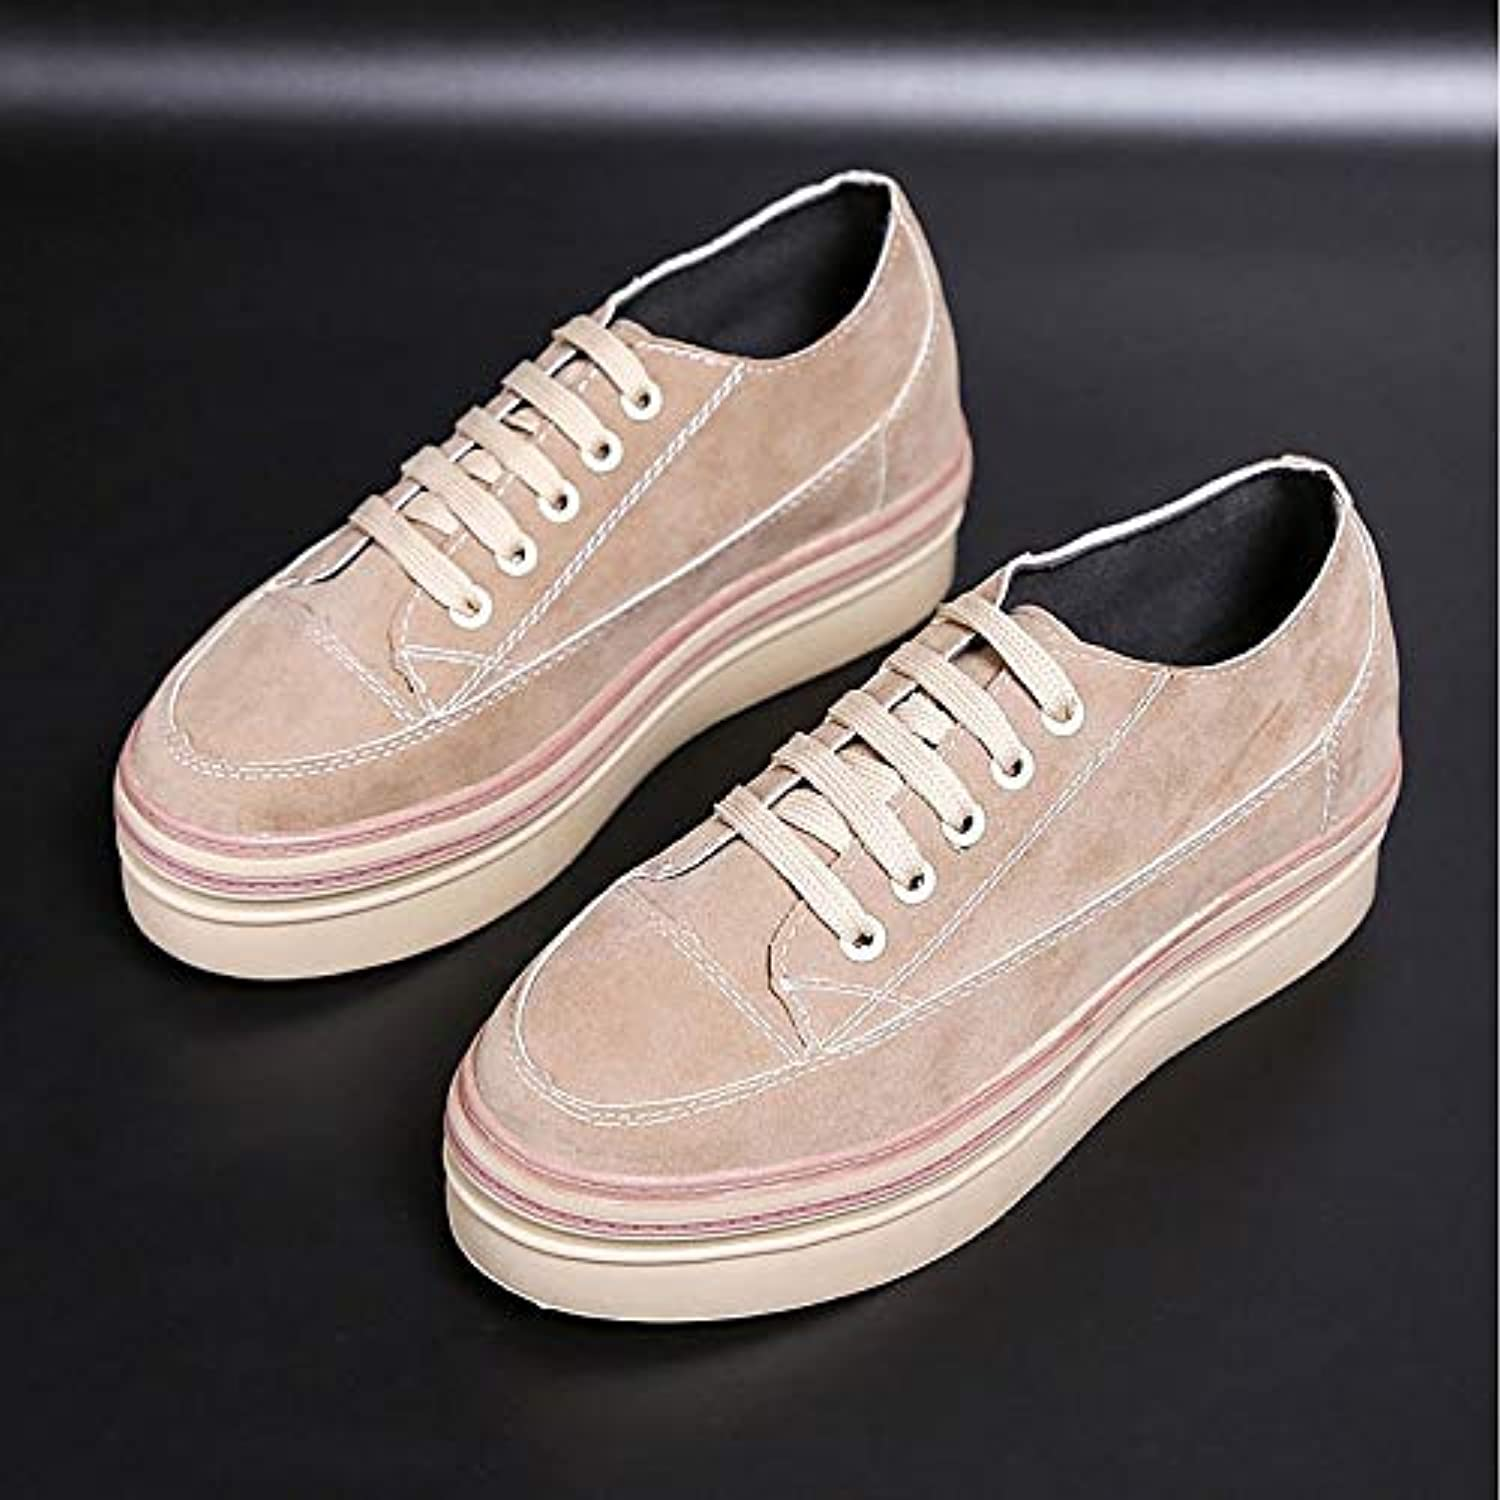 Women's Comfort shoes PU(Polyurethane) Fall Sneakers Creepers Round Toe Black Almond